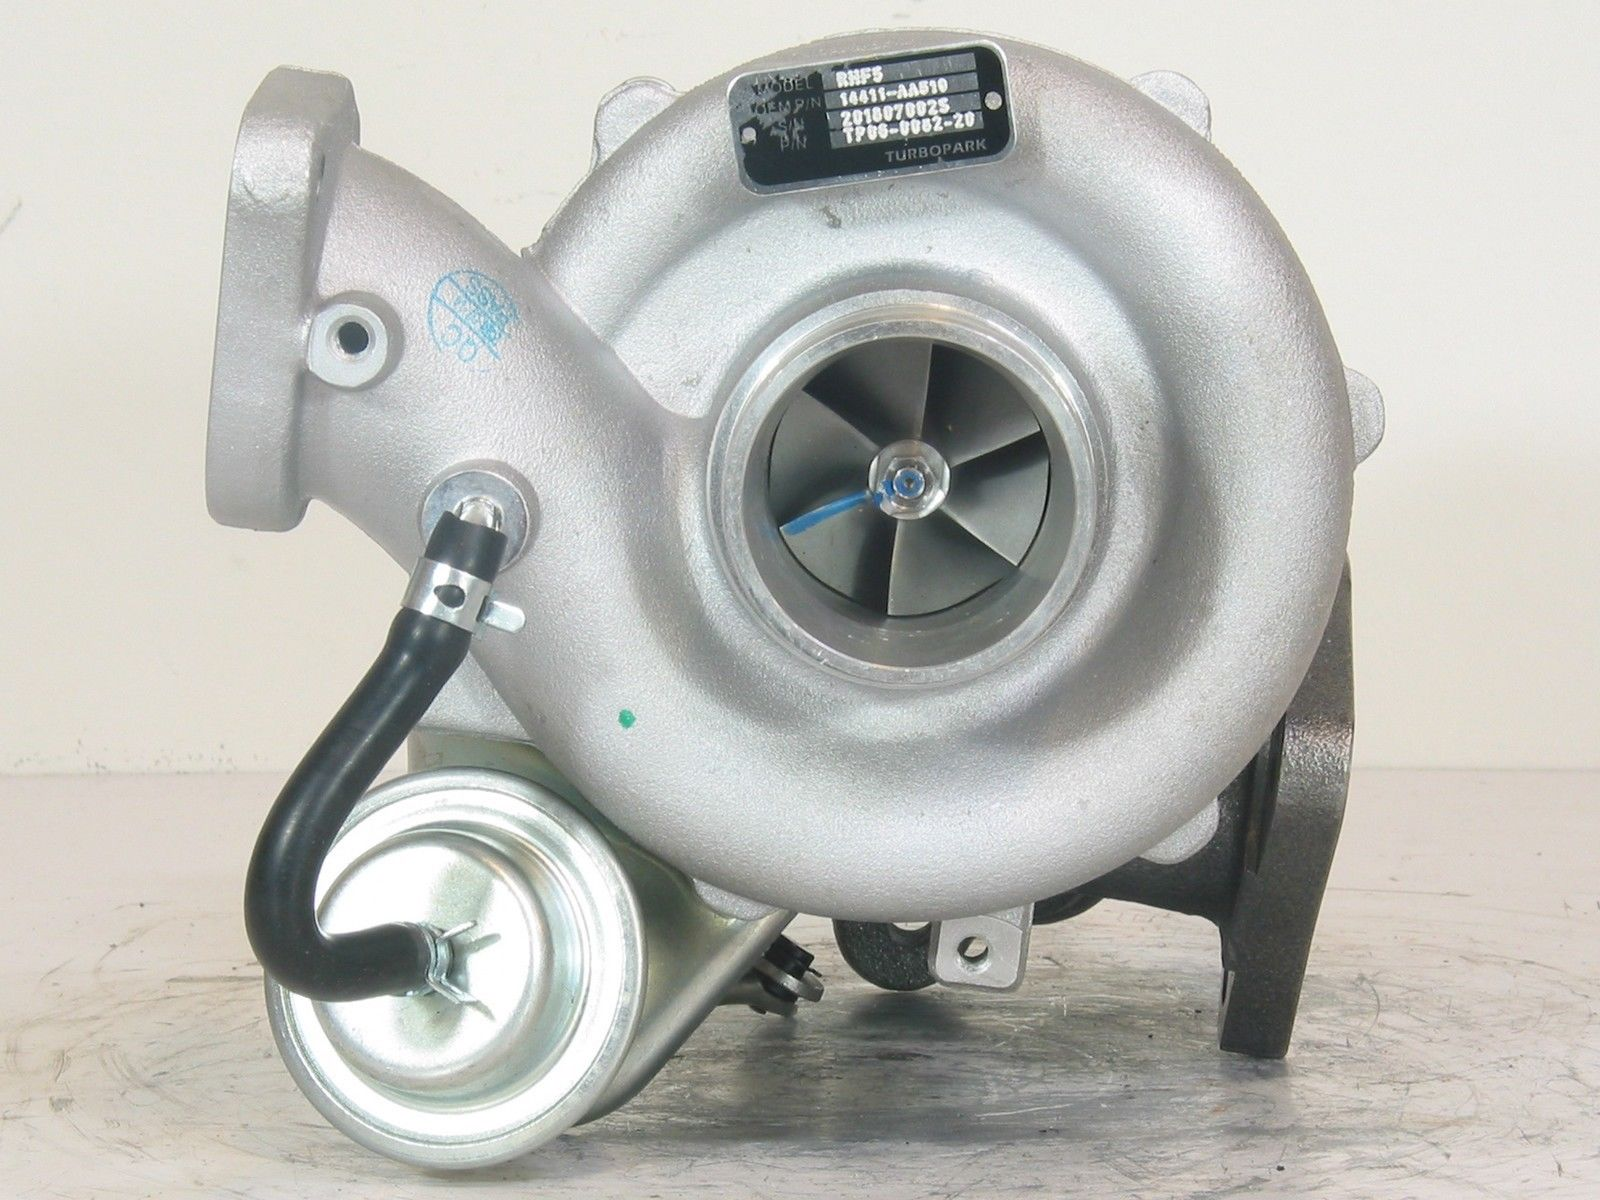 Subaru Legacy GT Outback XT VC430083 VF40 Turbo NEW RHF5H Turbocharger